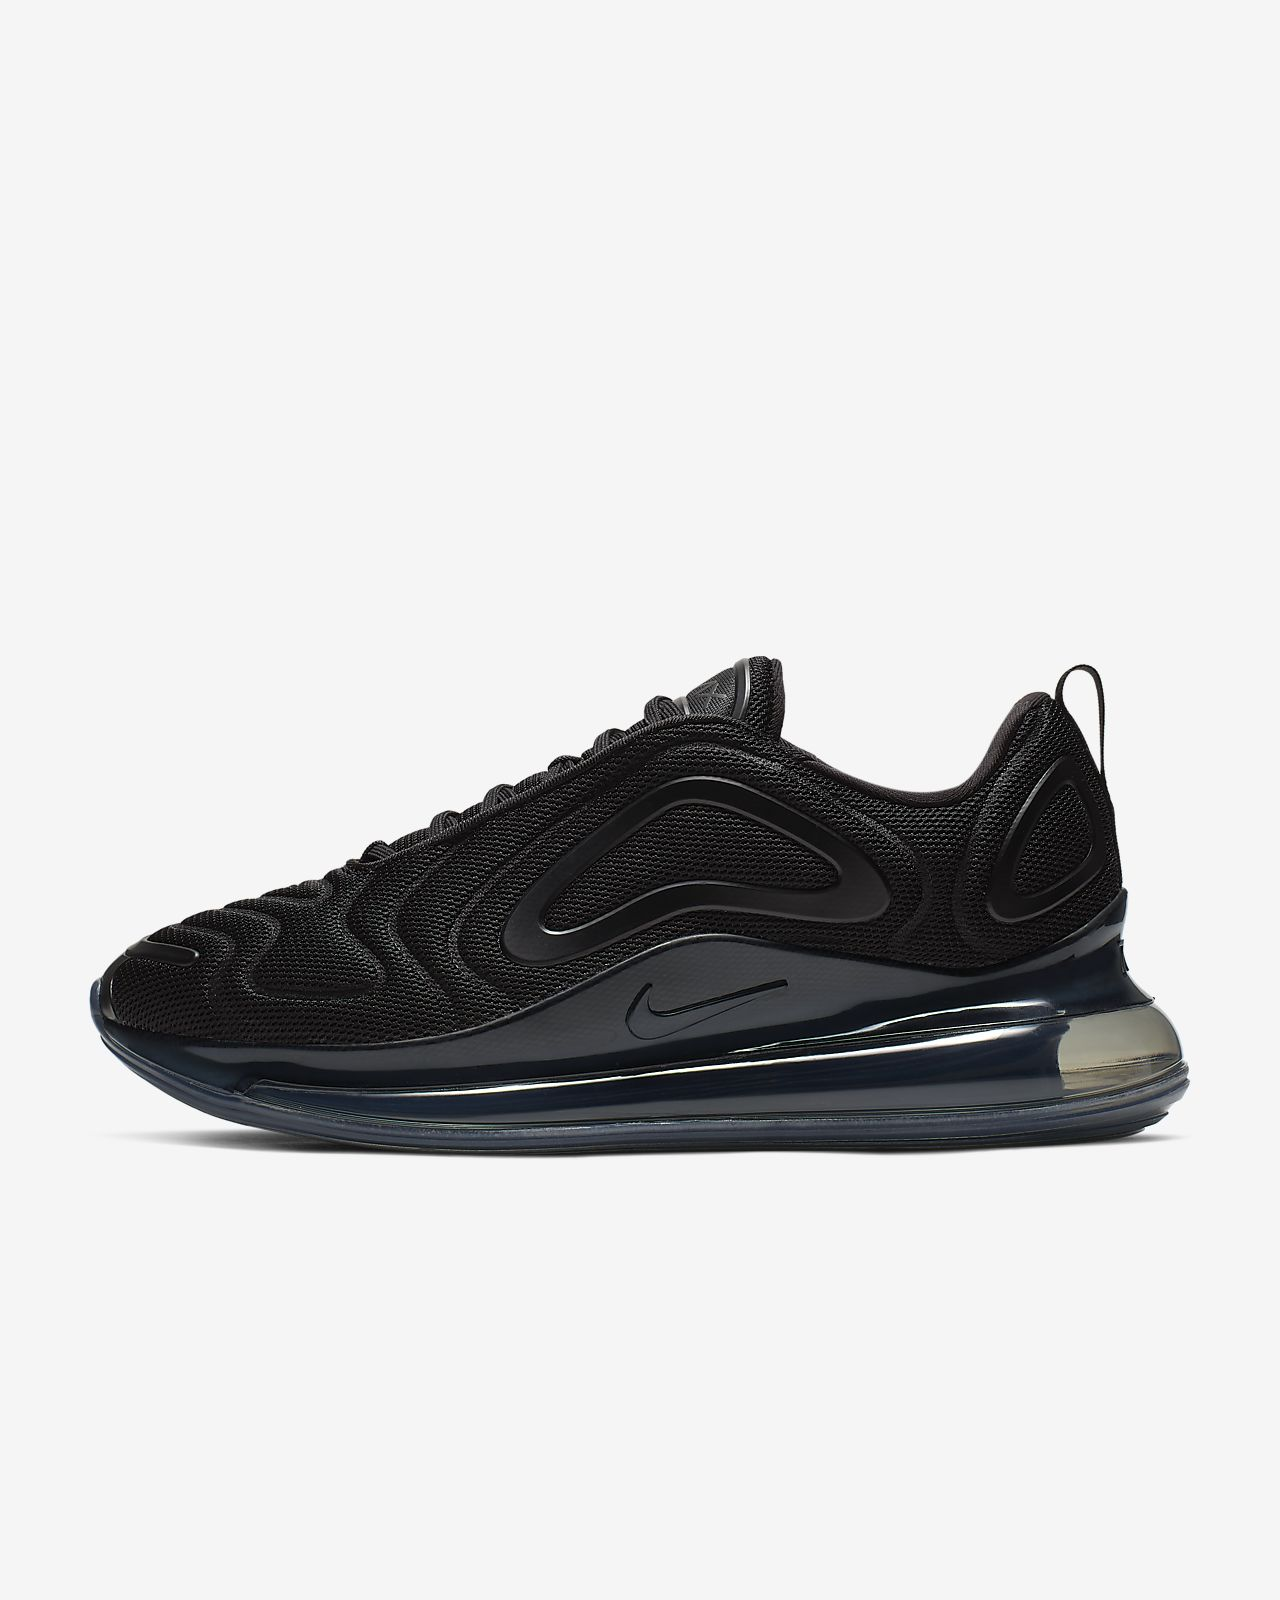 Nike Air Max 87 Herren not in